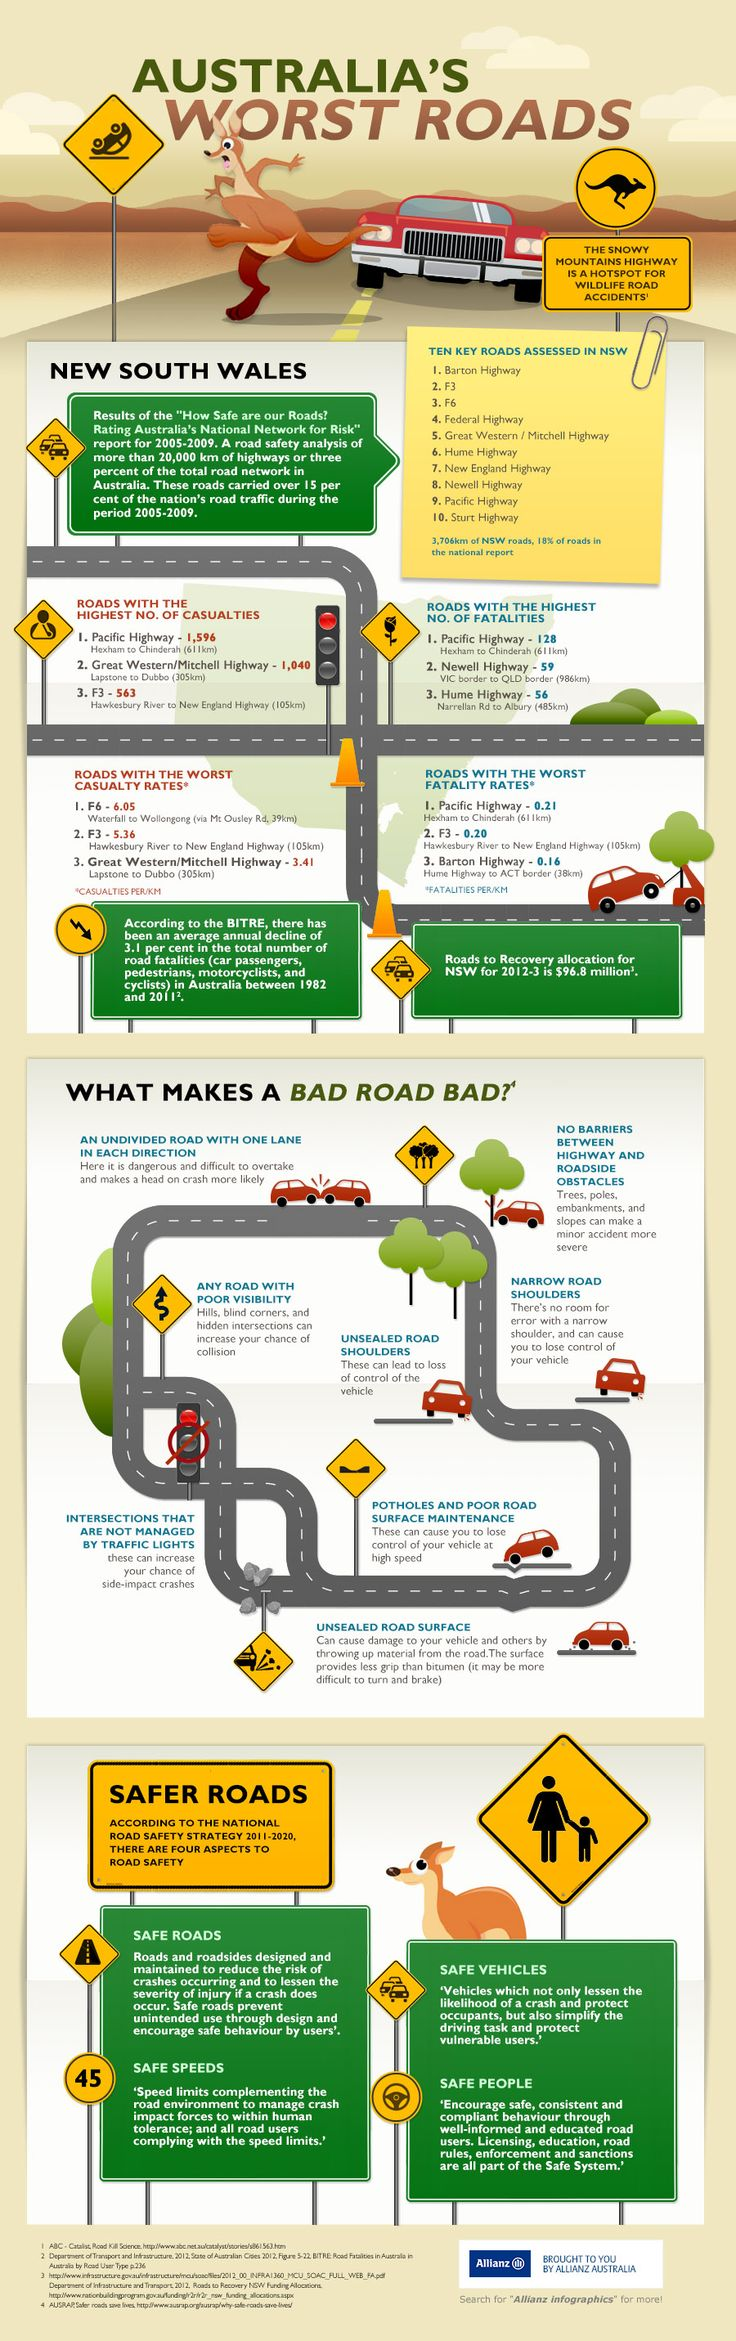 Worst roads in NSW infographic Car insurance, Auto